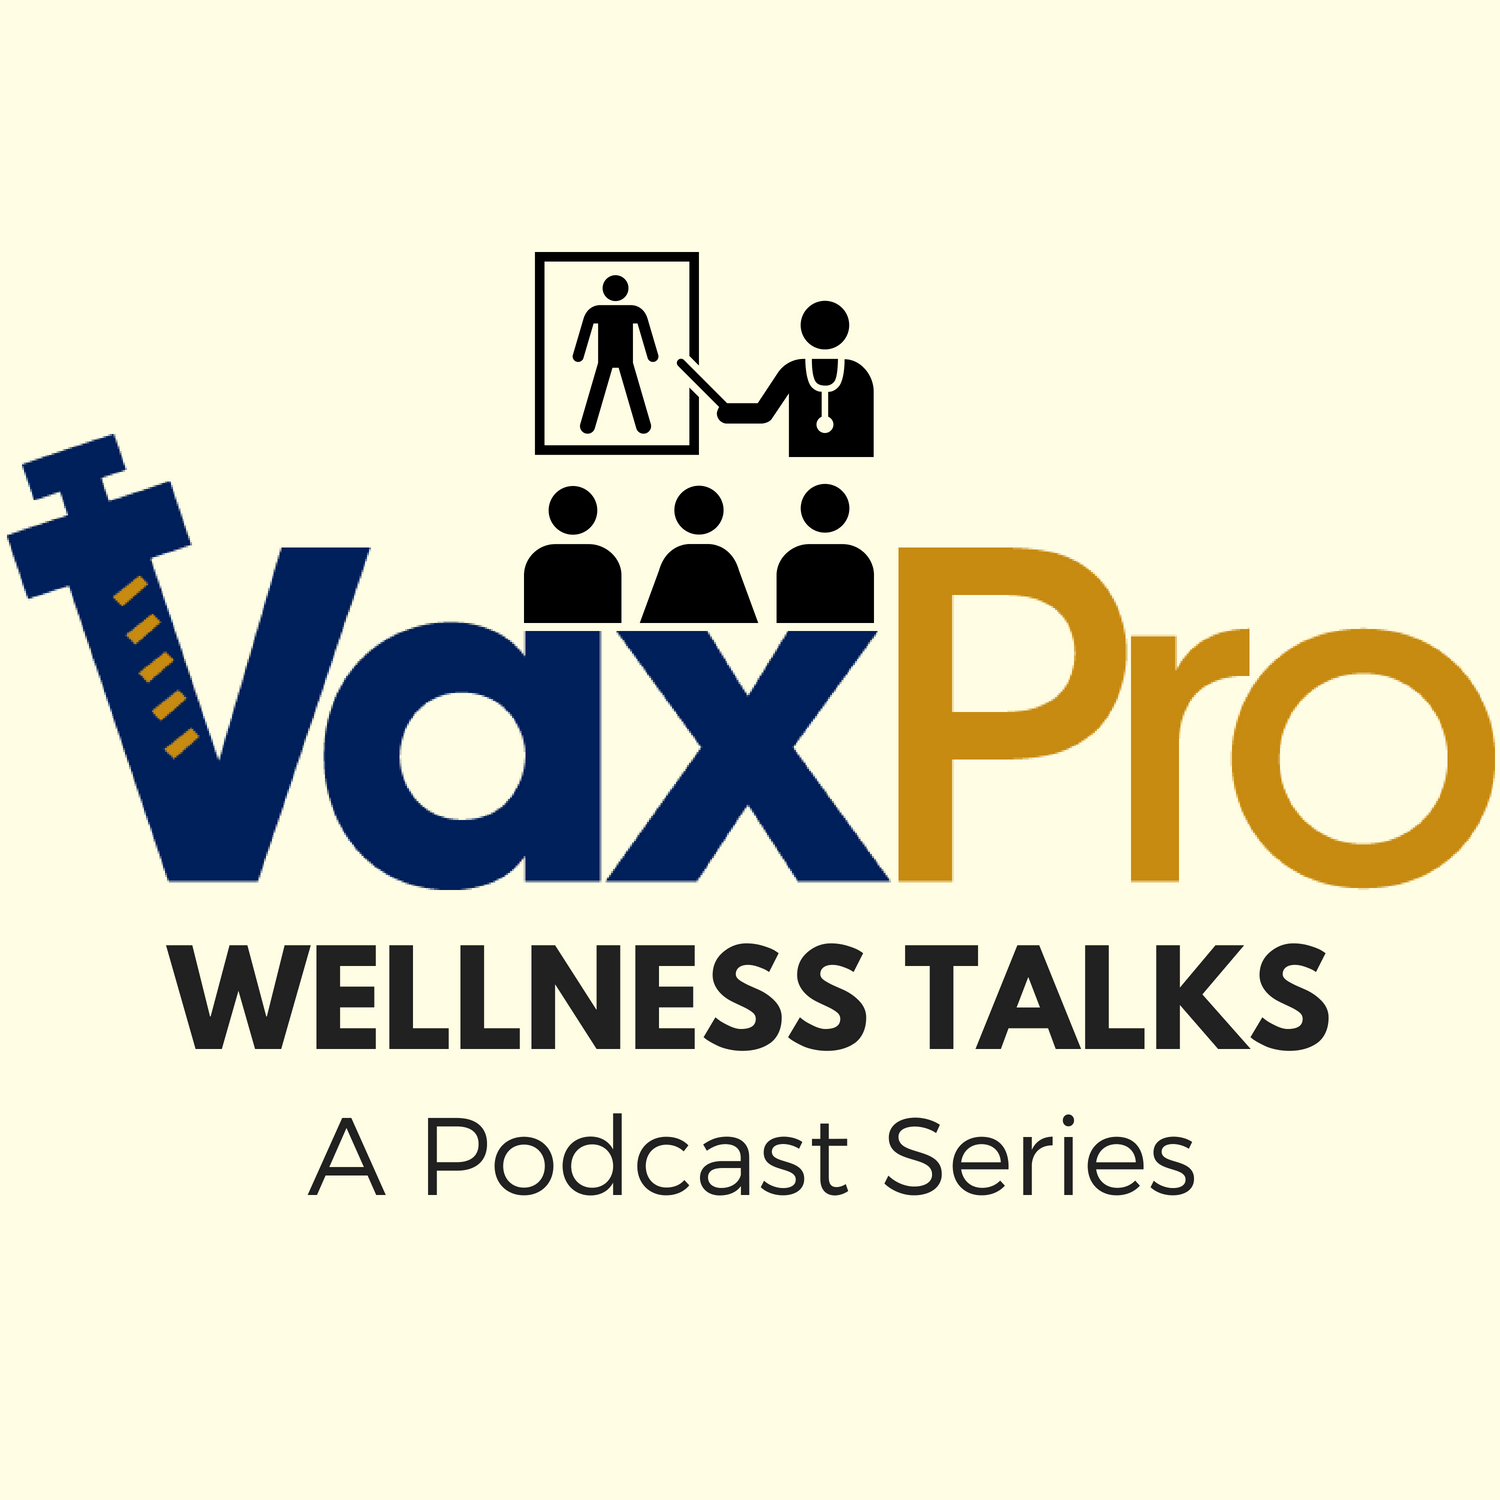 Wellness Talks